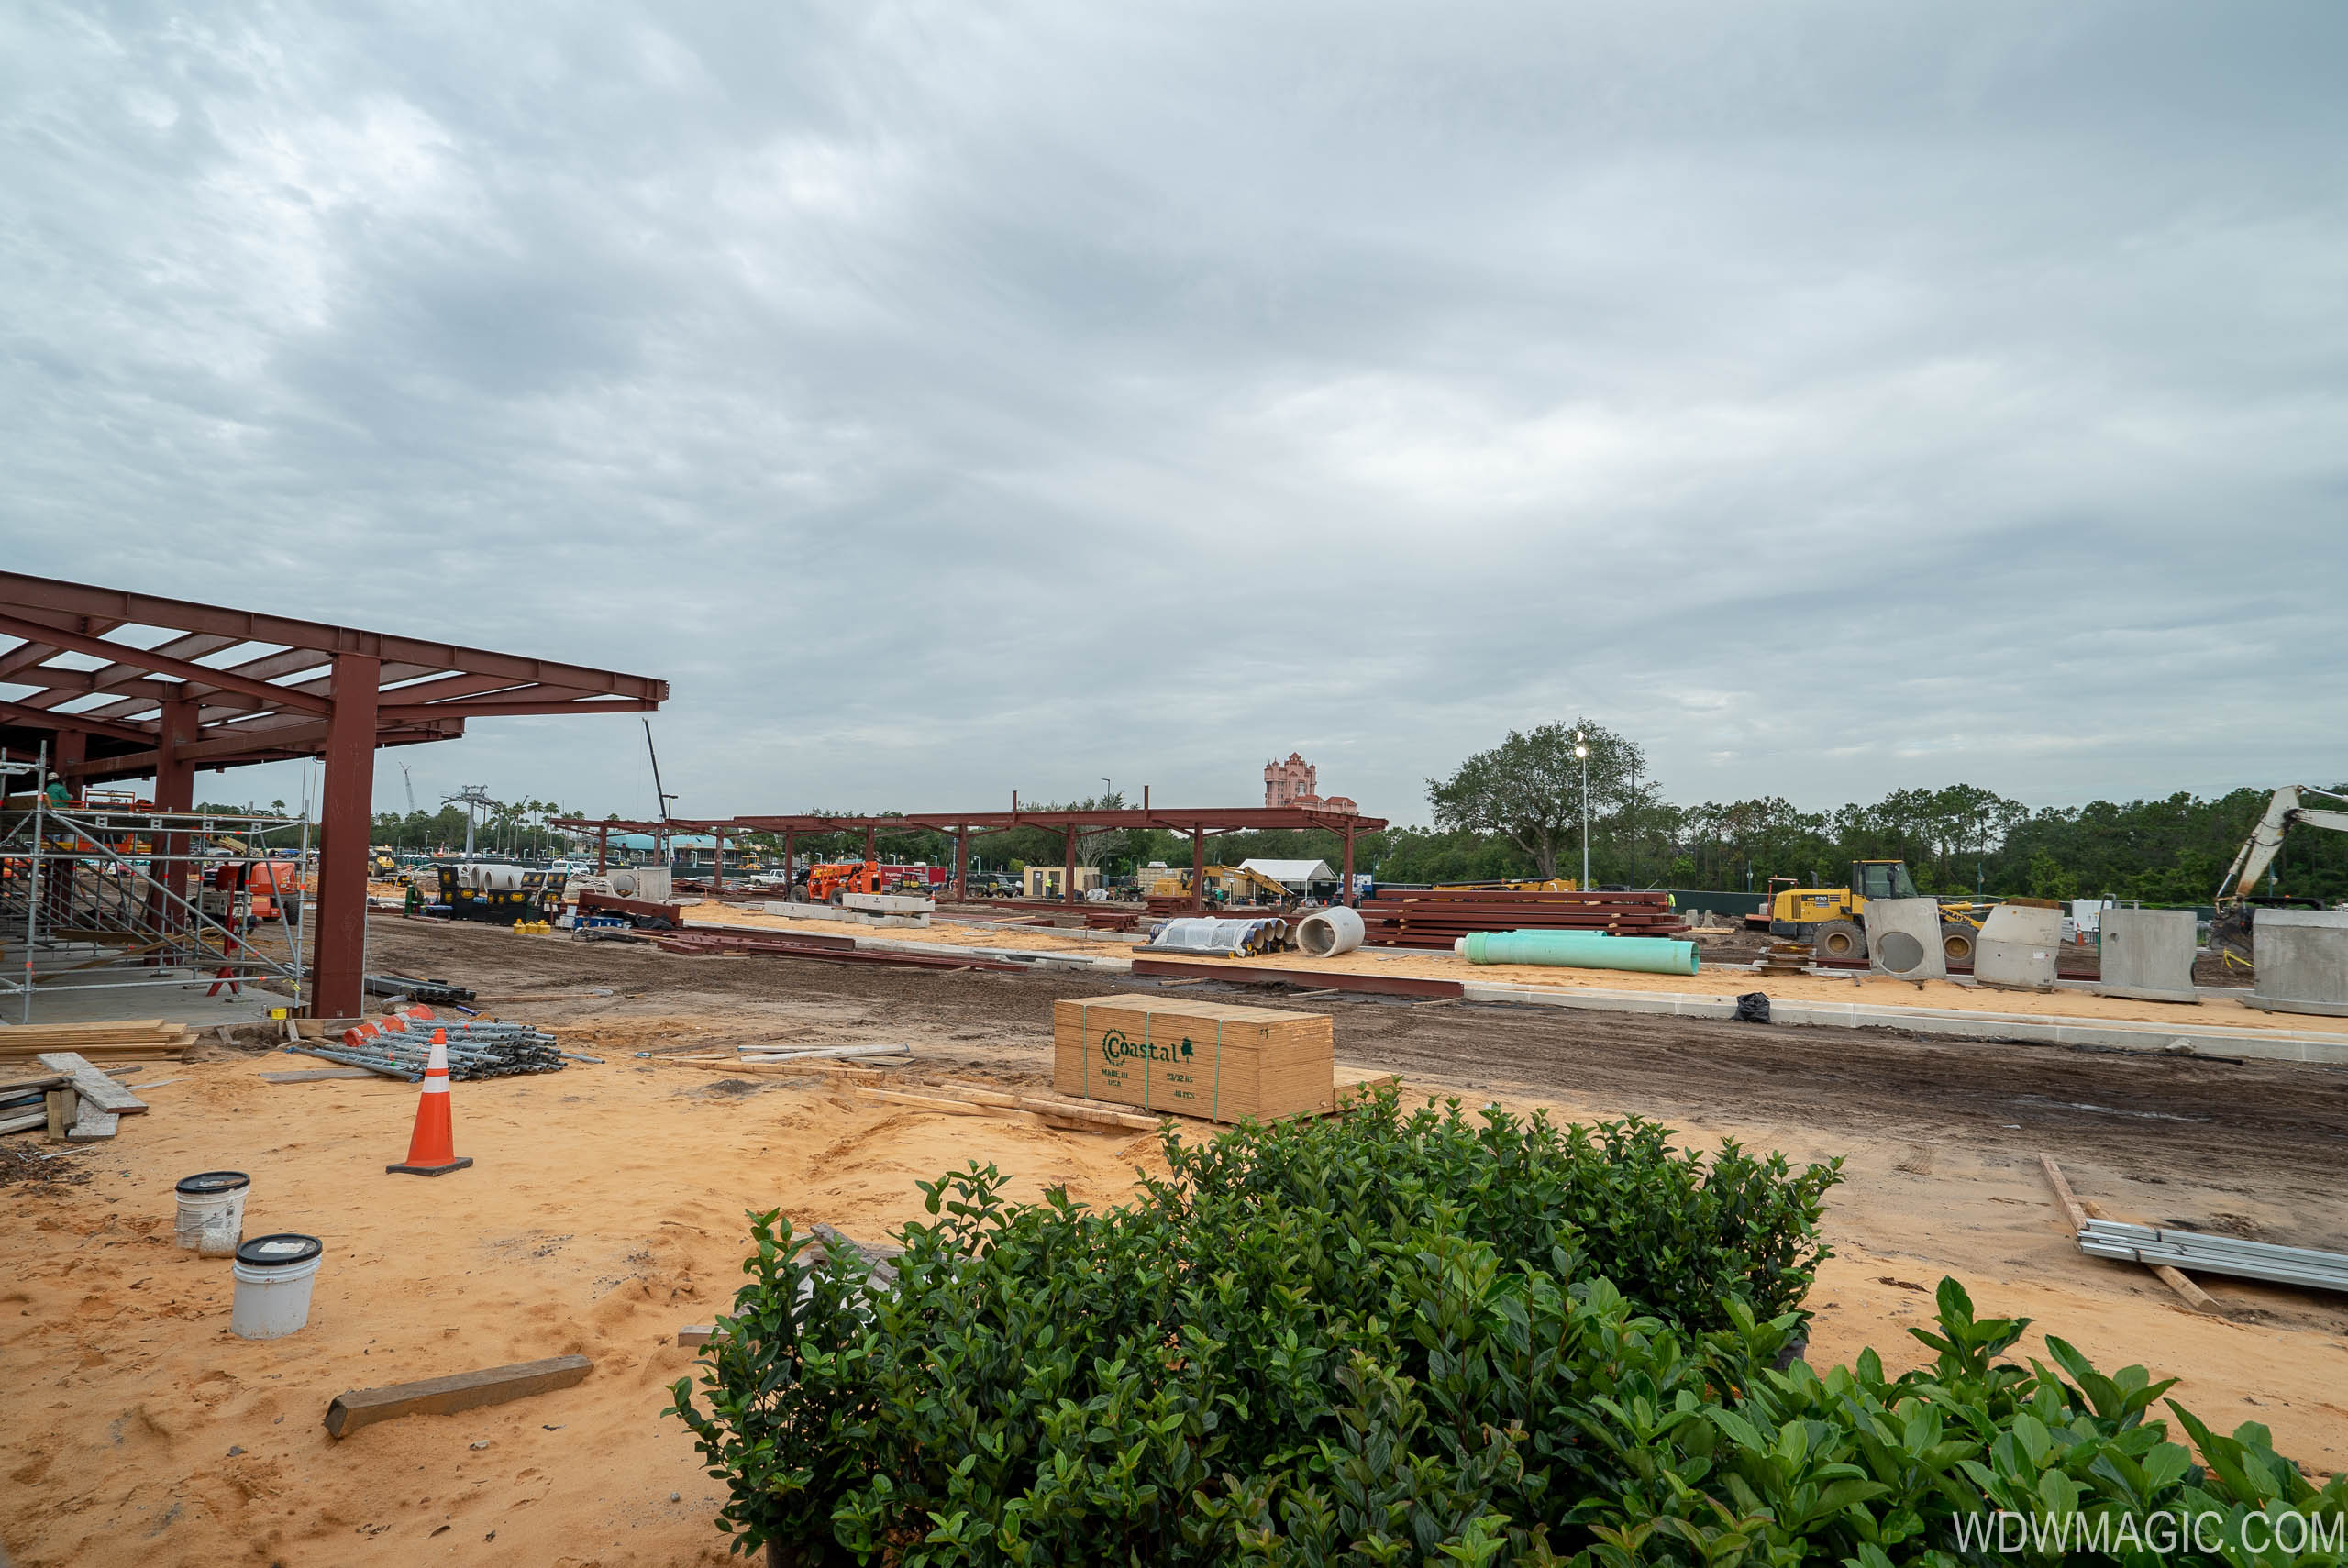 New resort bus stop area under construction at the Studios